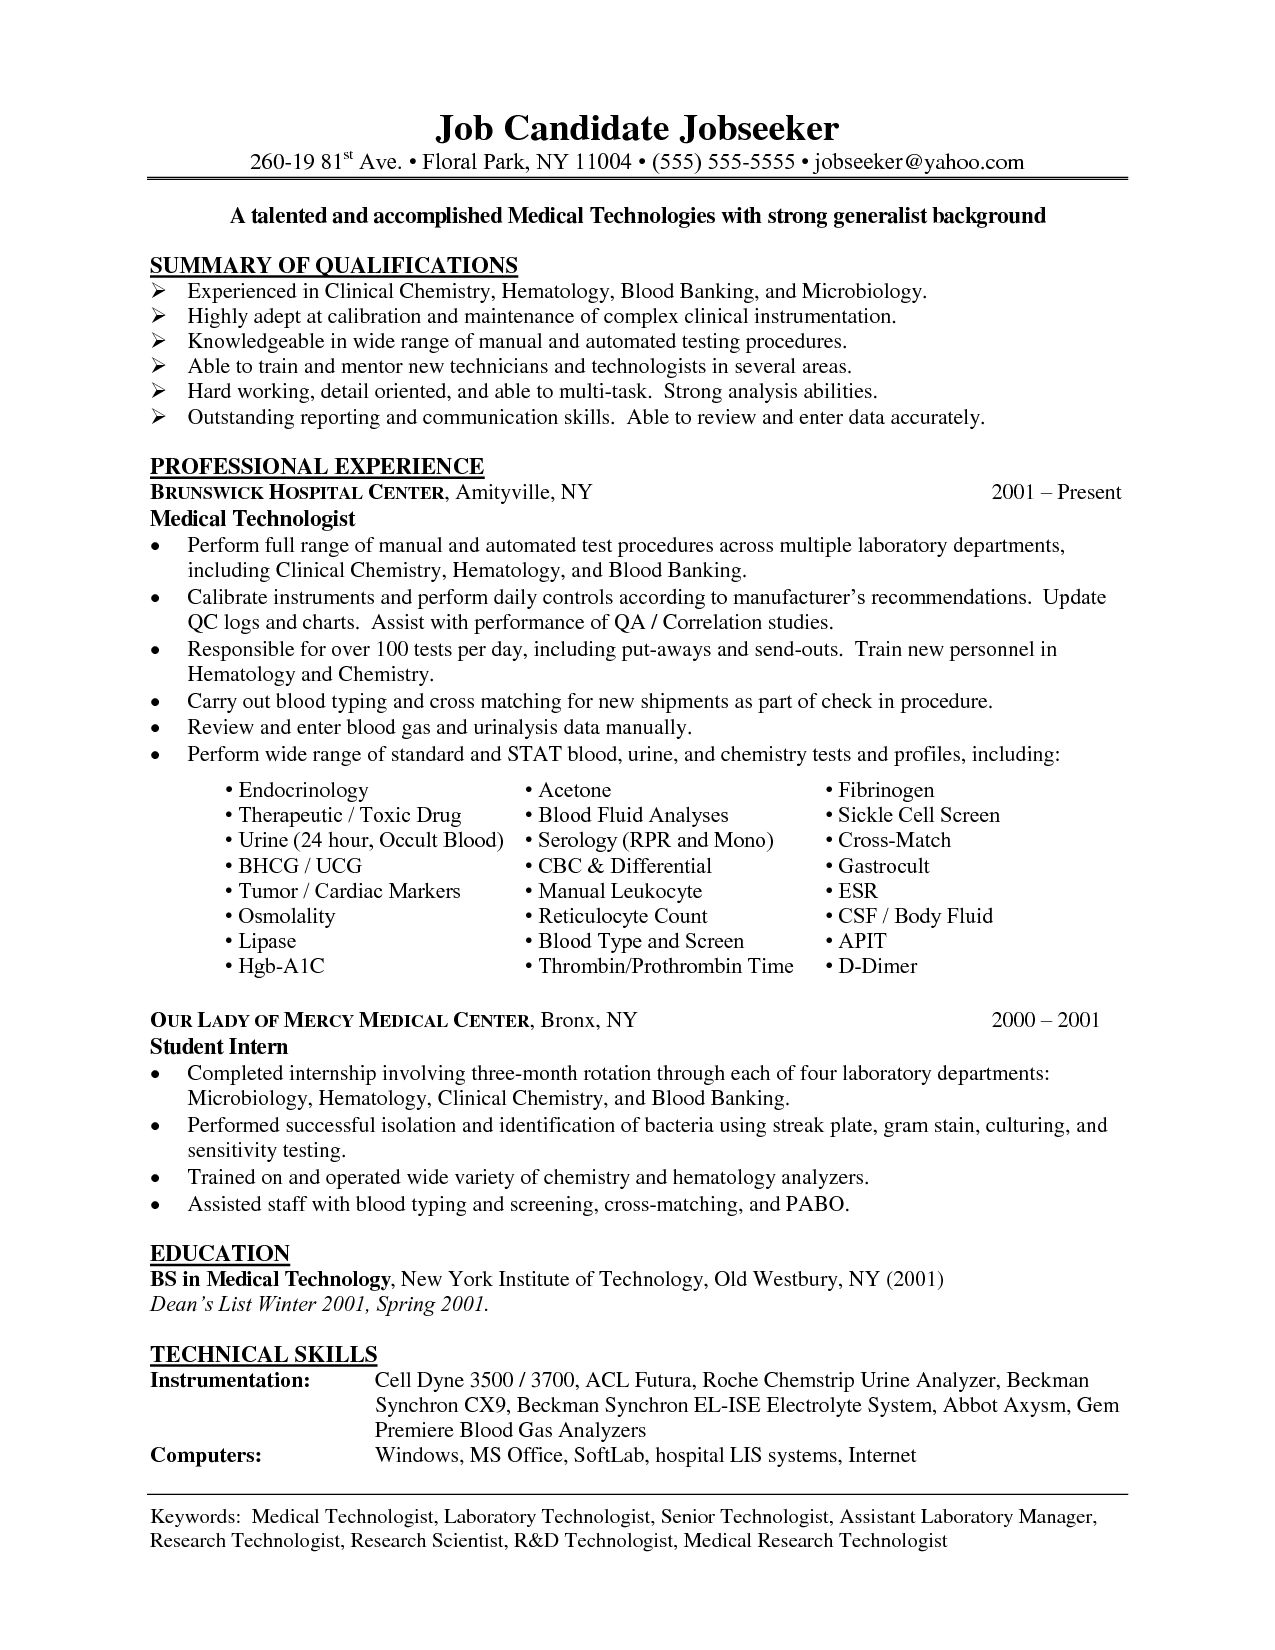 Veterinarian Resume Veterinarian Resumes Veterinary Assistant Resume Example Cover